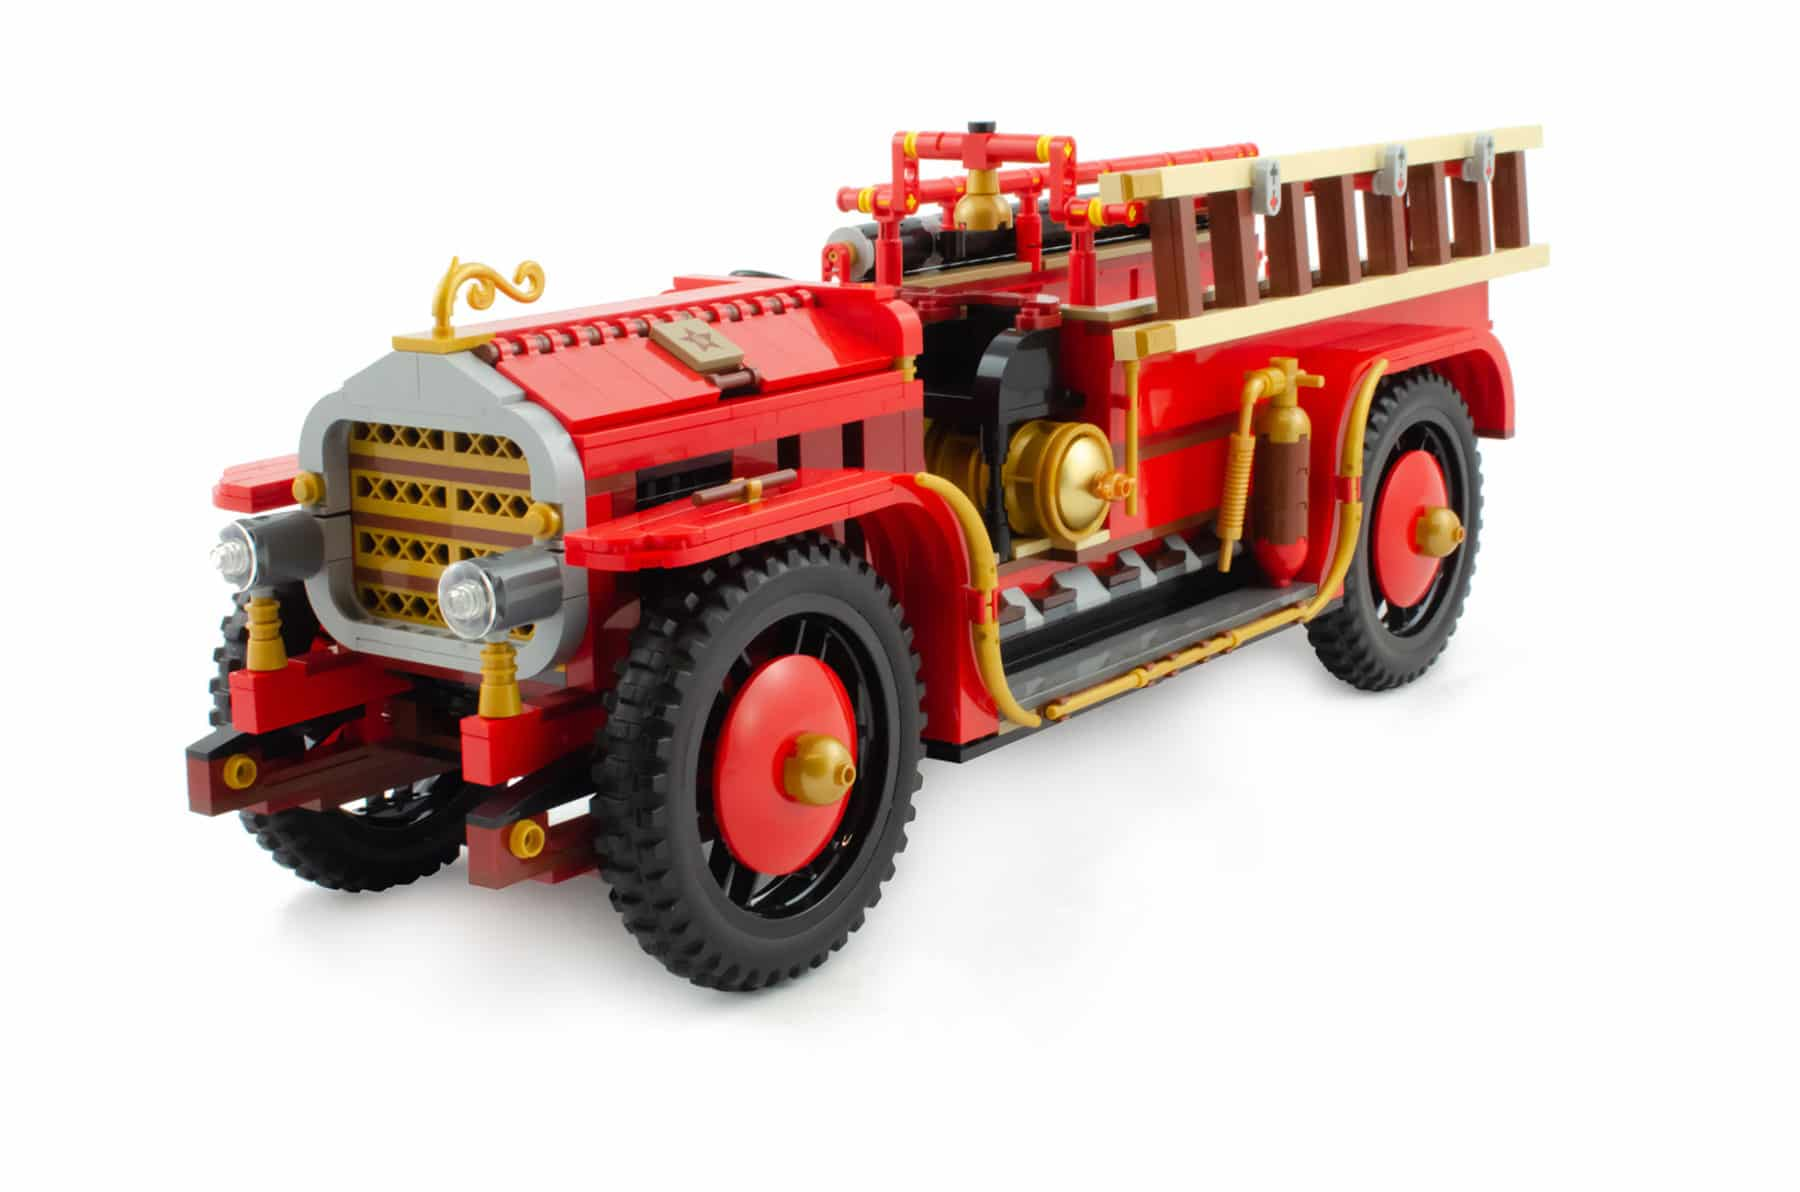 Bricklink AFOL Designer Program: Antique Fire Engine